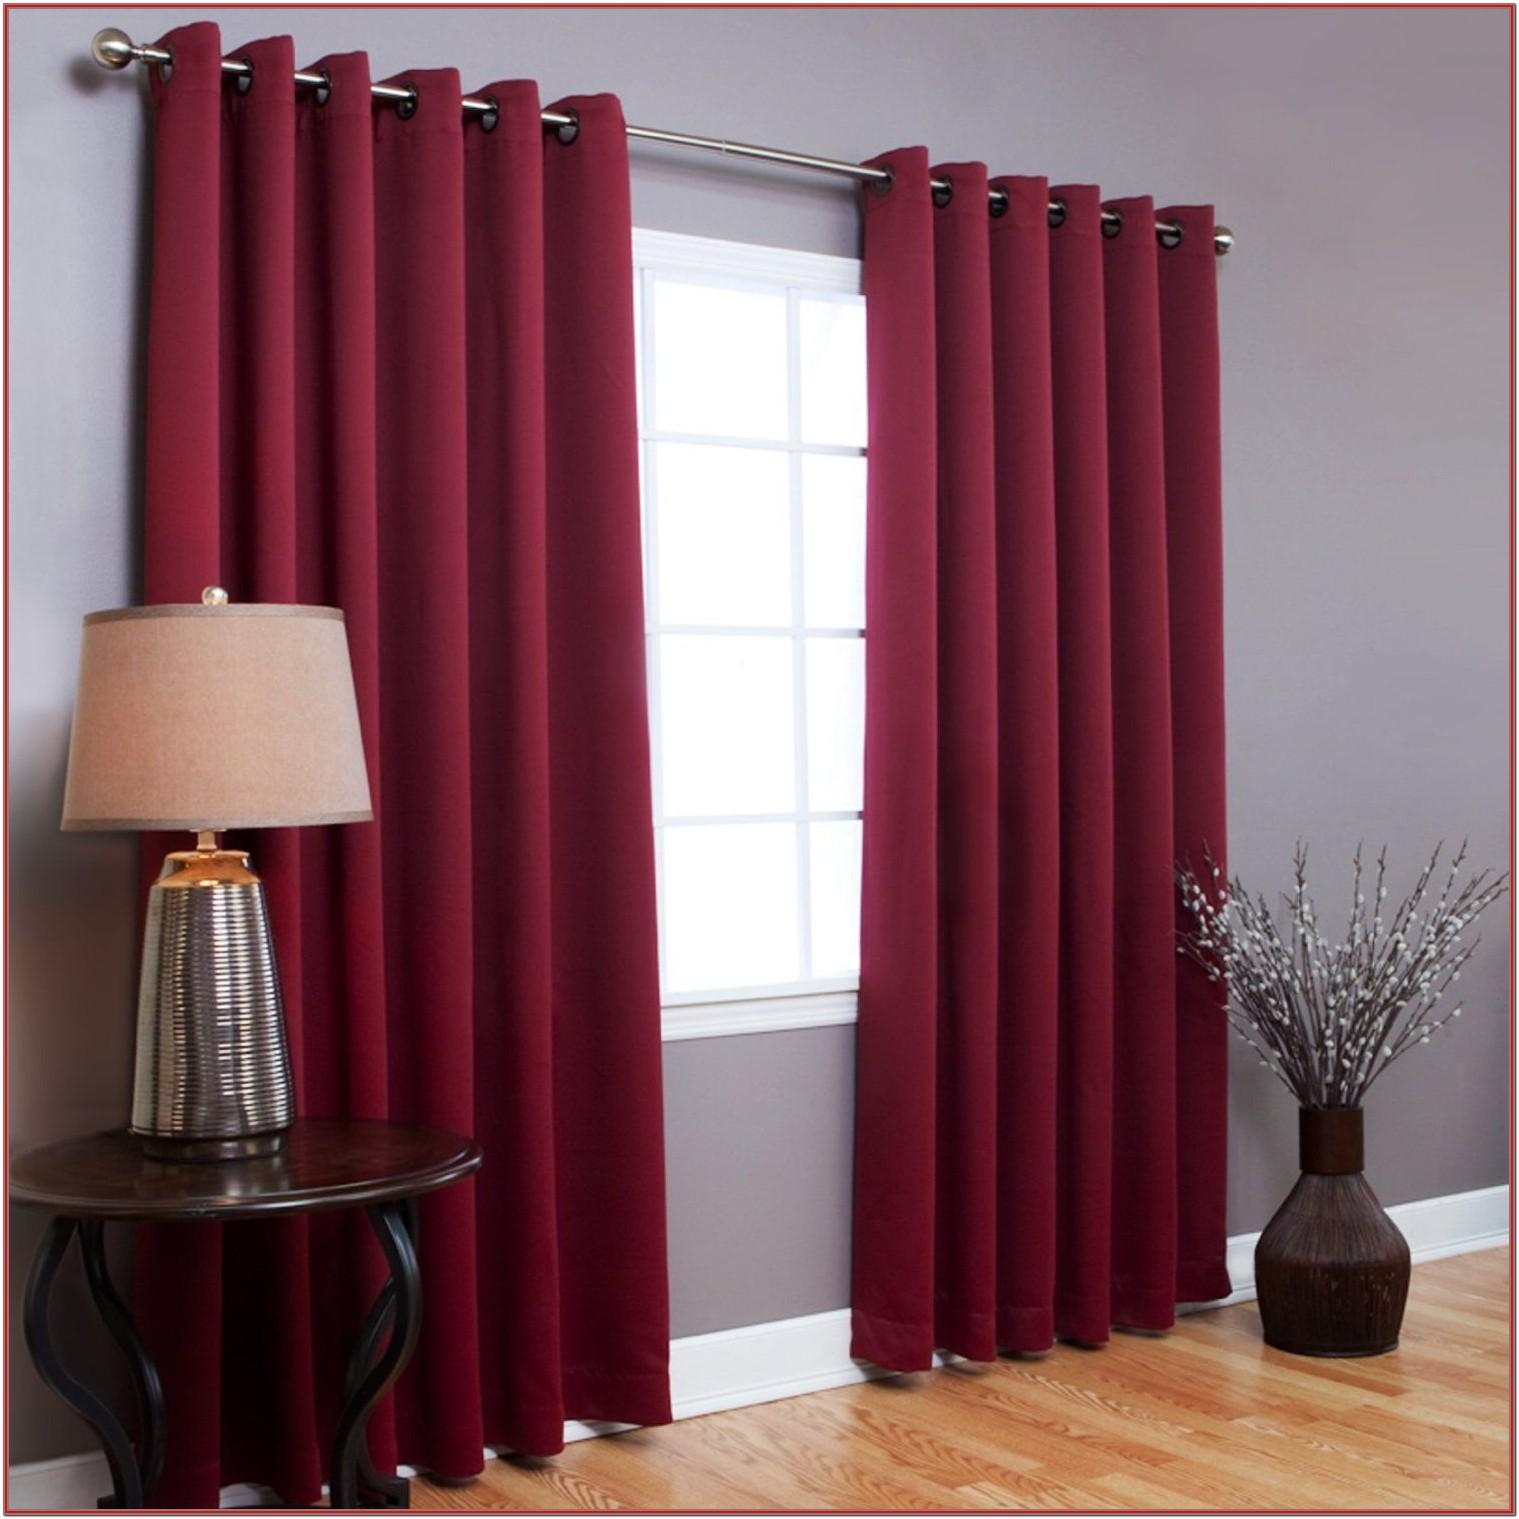 Living Room Red And Black Curtains